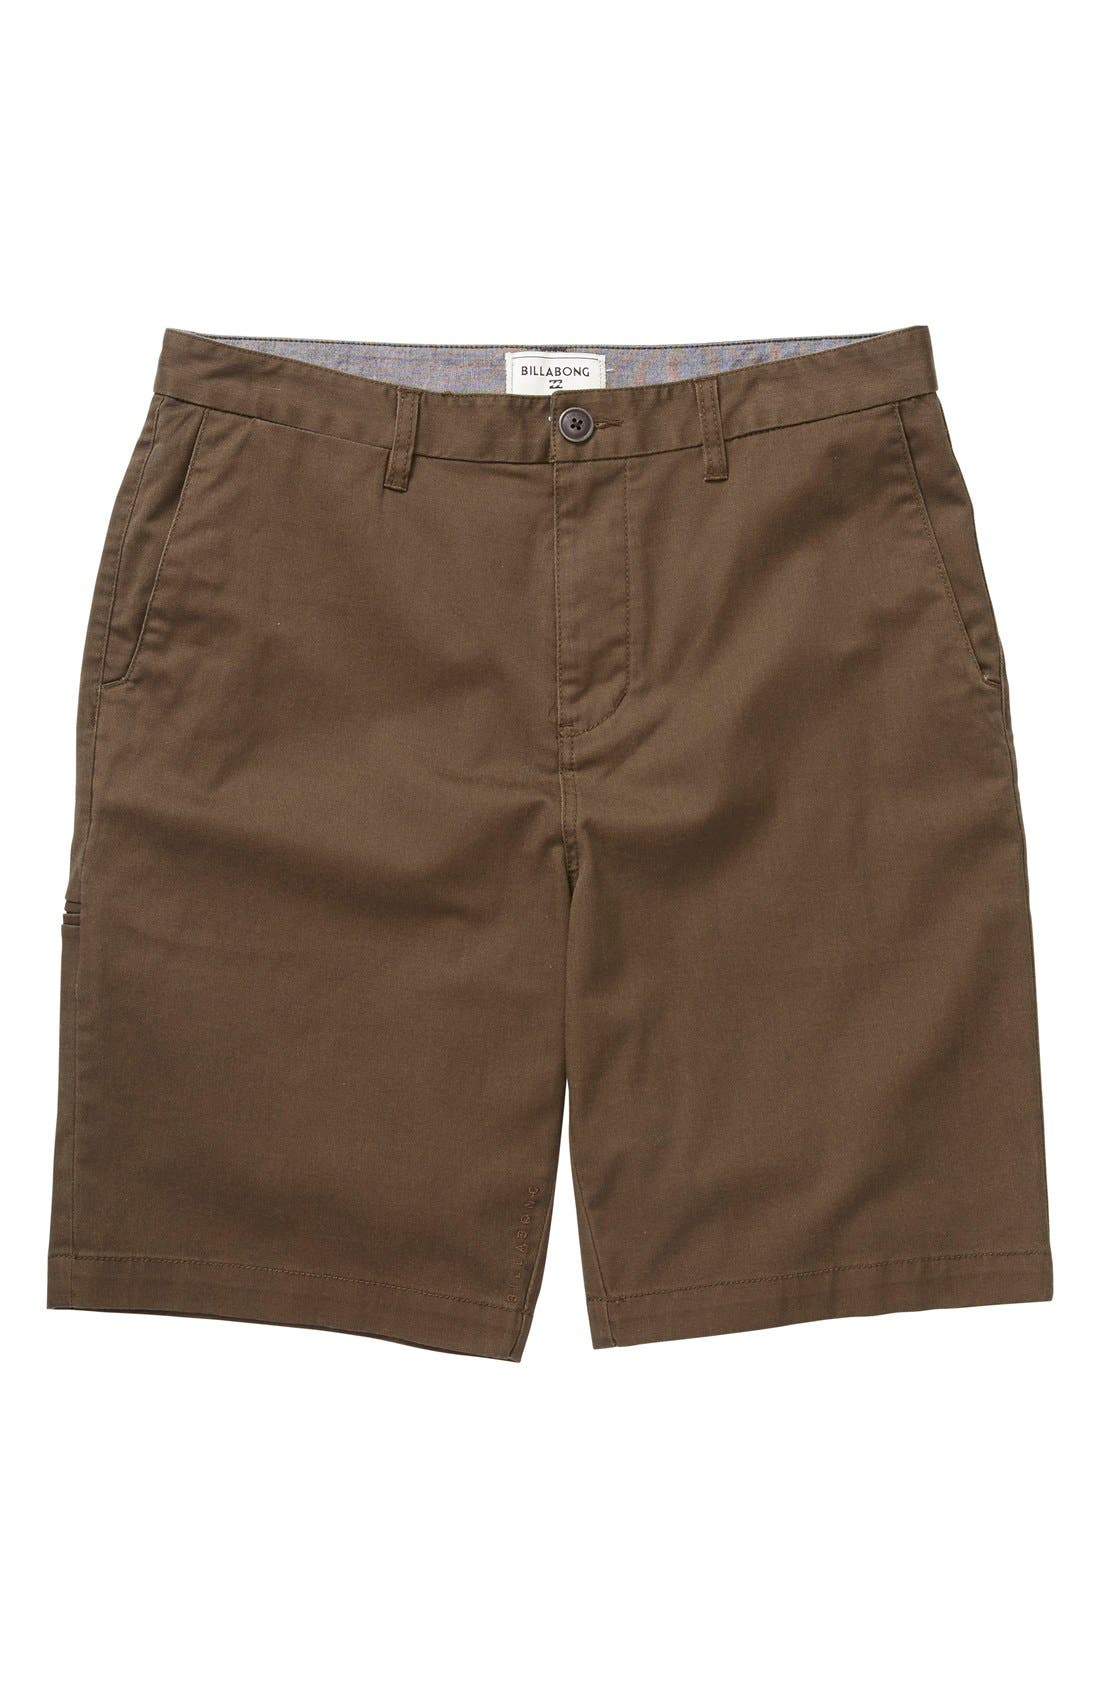 'Carter' Cotton Twill Shorts,                             Main thumbnail 4, color,